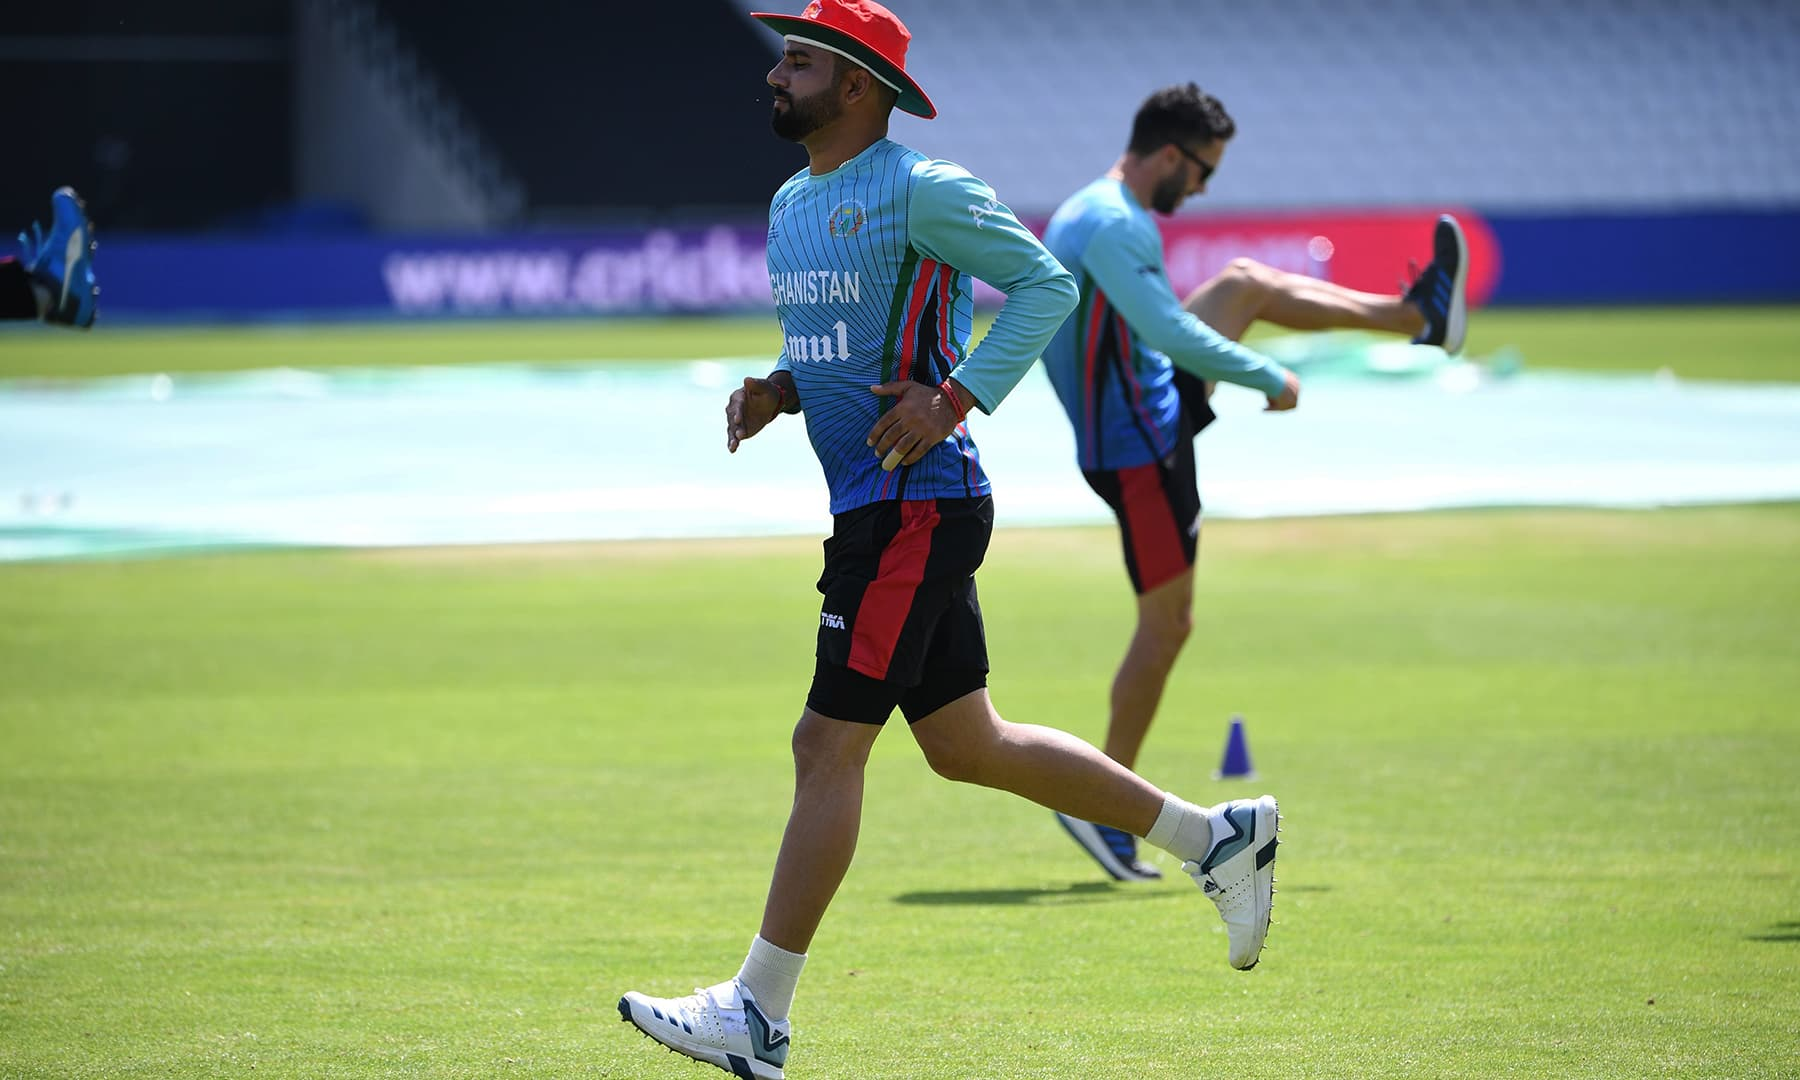 Afghanistan's Aftab Alam participating in the training session at Headingly. — AFP